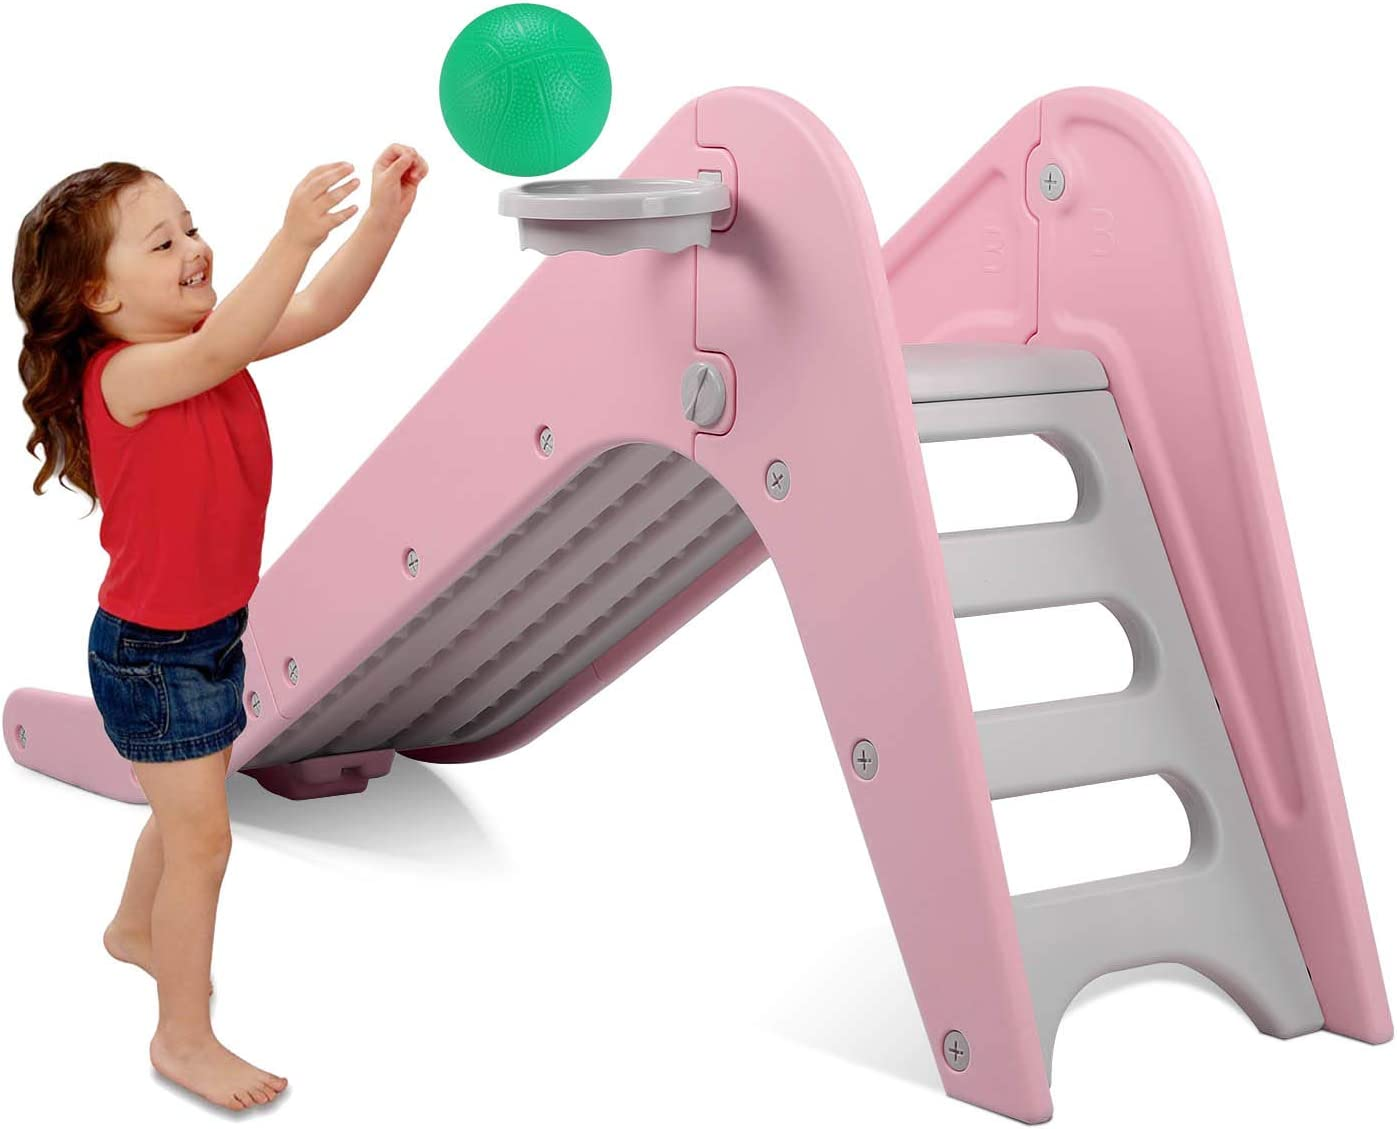 Baby Play Climber Slide Set with Extra Long Slipping Slope and Basketball Hoop Childs Gift LAZY BUDDY Freestanding Kid Slide Fun Toy Playground Equipment Indoor Outdoor Game Center